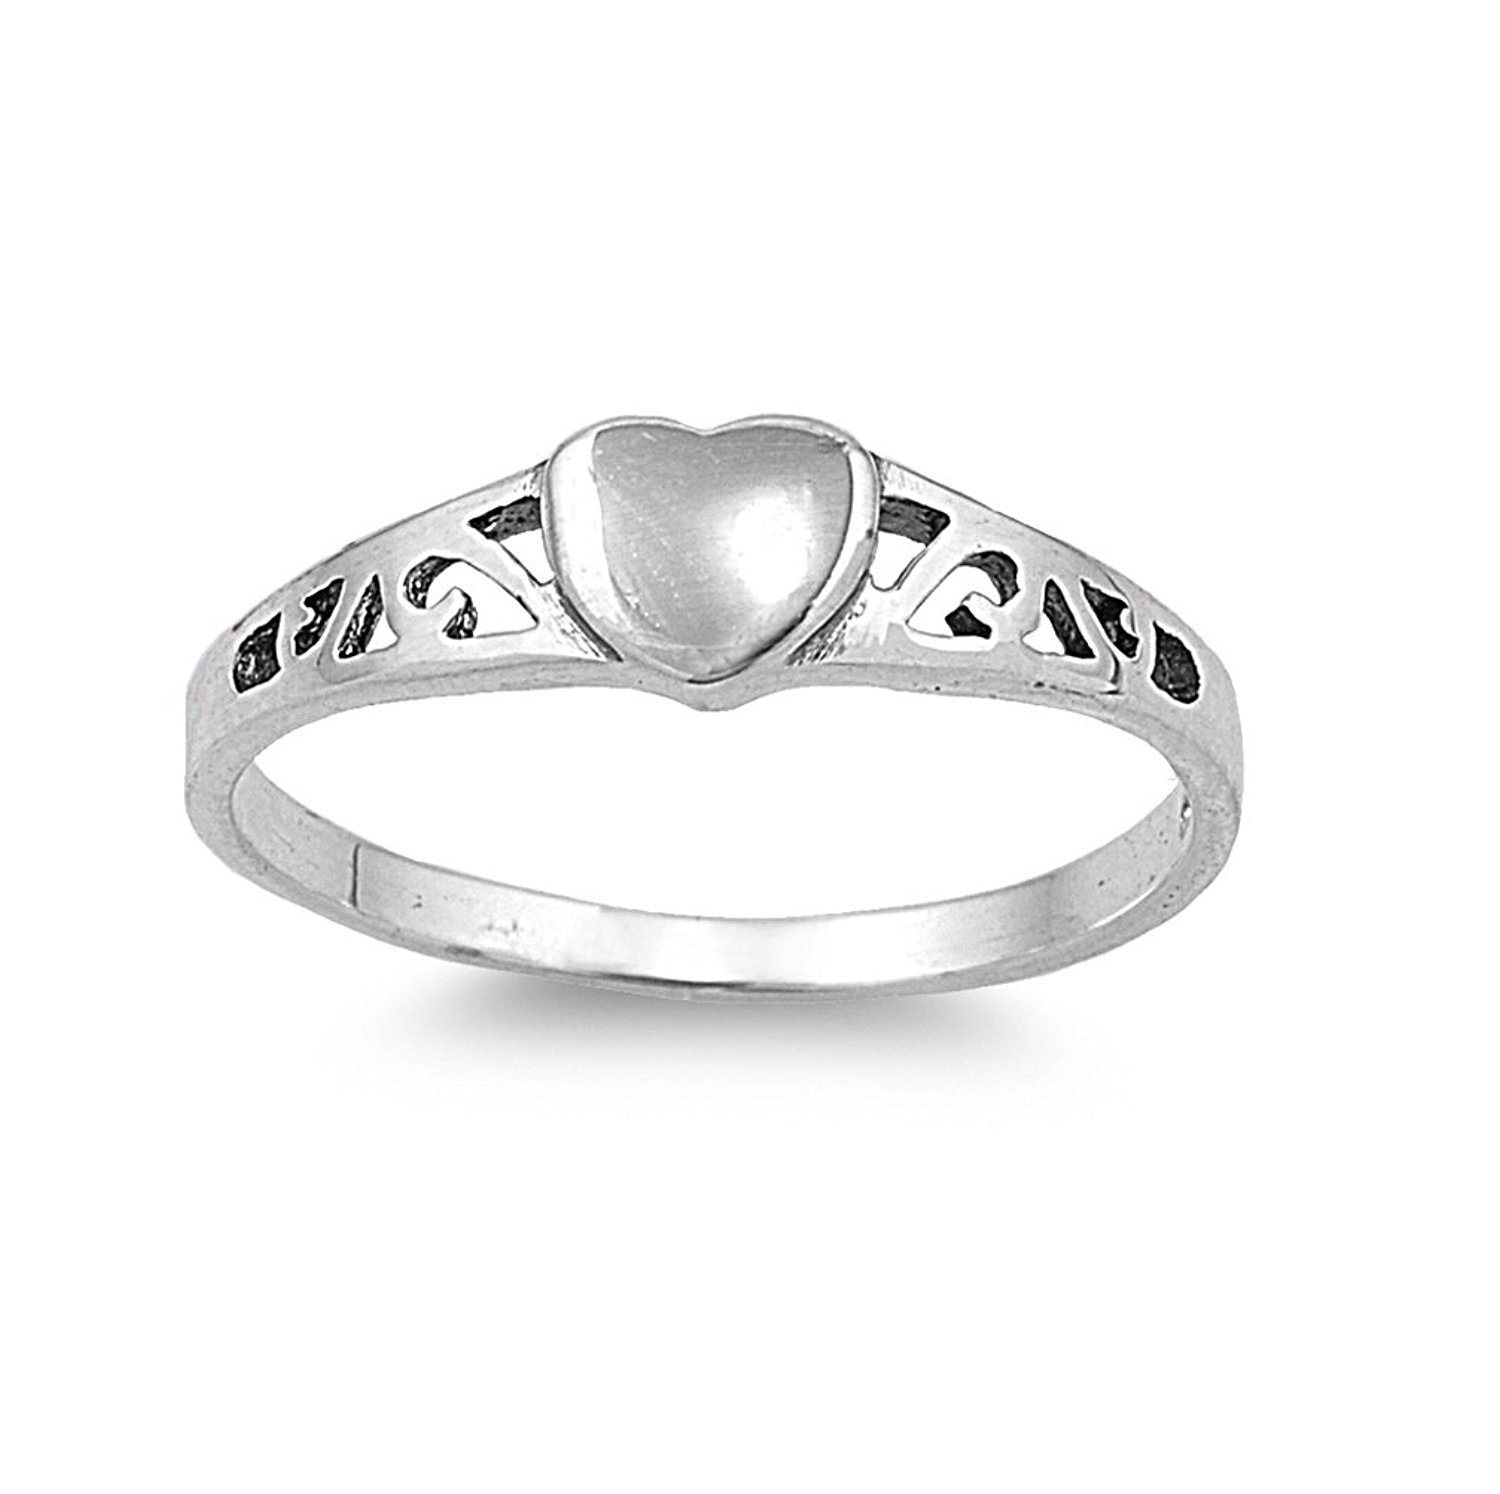 CloseoutWarehouse Heart Filigree Ring Sterling Silver 925